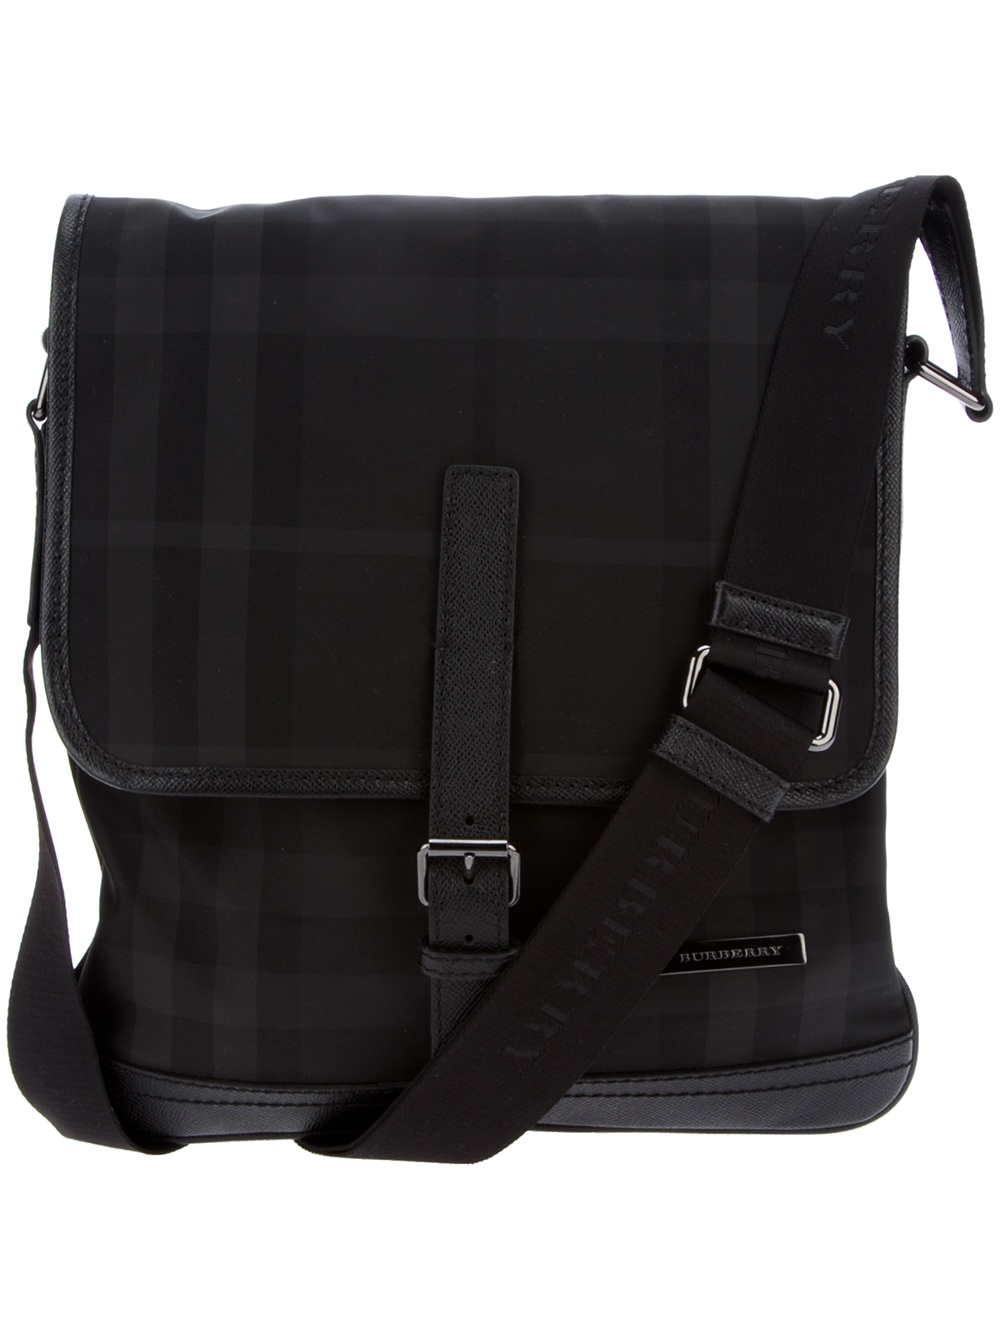 2e258197058d Lyst - Burberry Messenger Bag in Black for Men